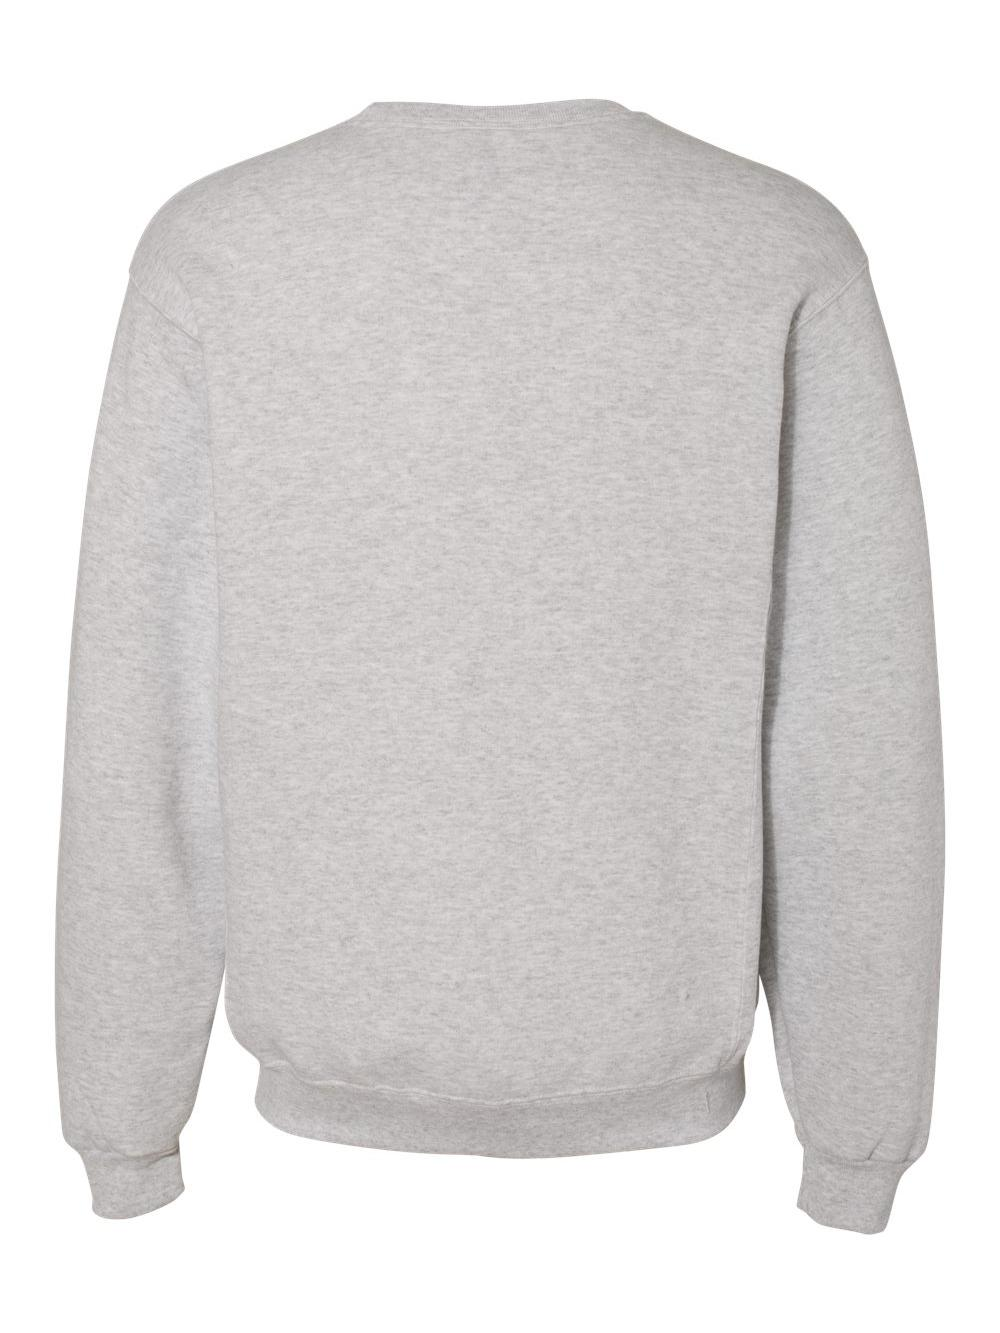 9c999fbbe57 Russell Athletic Men s Dri-power Fleece Crew Pullover S Ash. About this  product. Picture 1 of 4  Picture 2 of 4  Picture 3 of 4  Picture 4 of 4